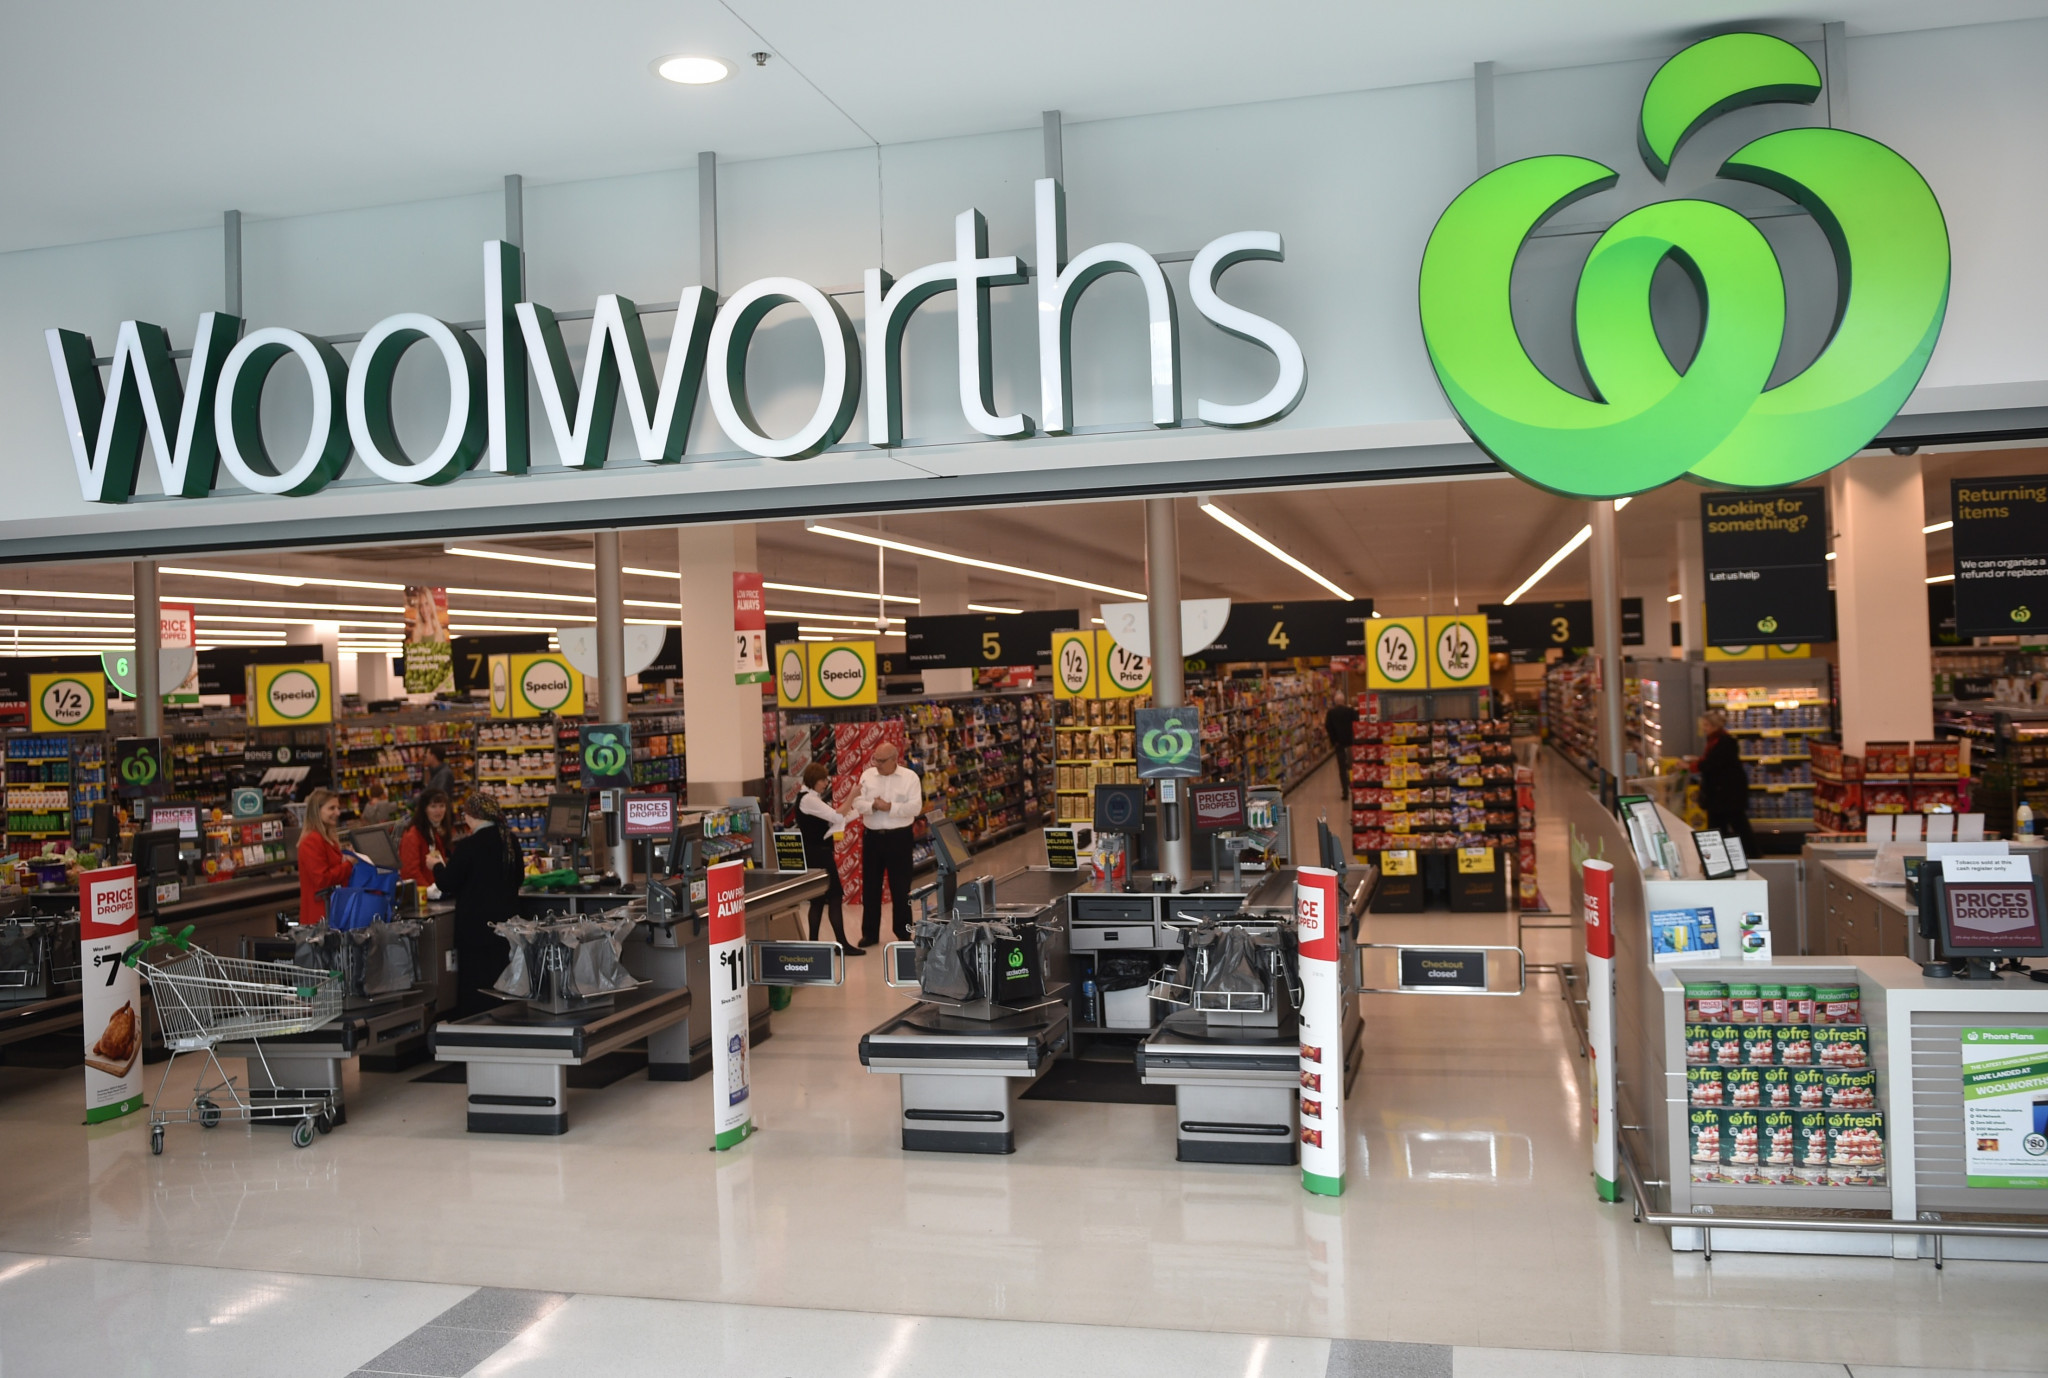 Woolworths has announced that it will be an official supermarket and fresh food supporter for the Australian teams at Tokyo 2020 ©Getty Images